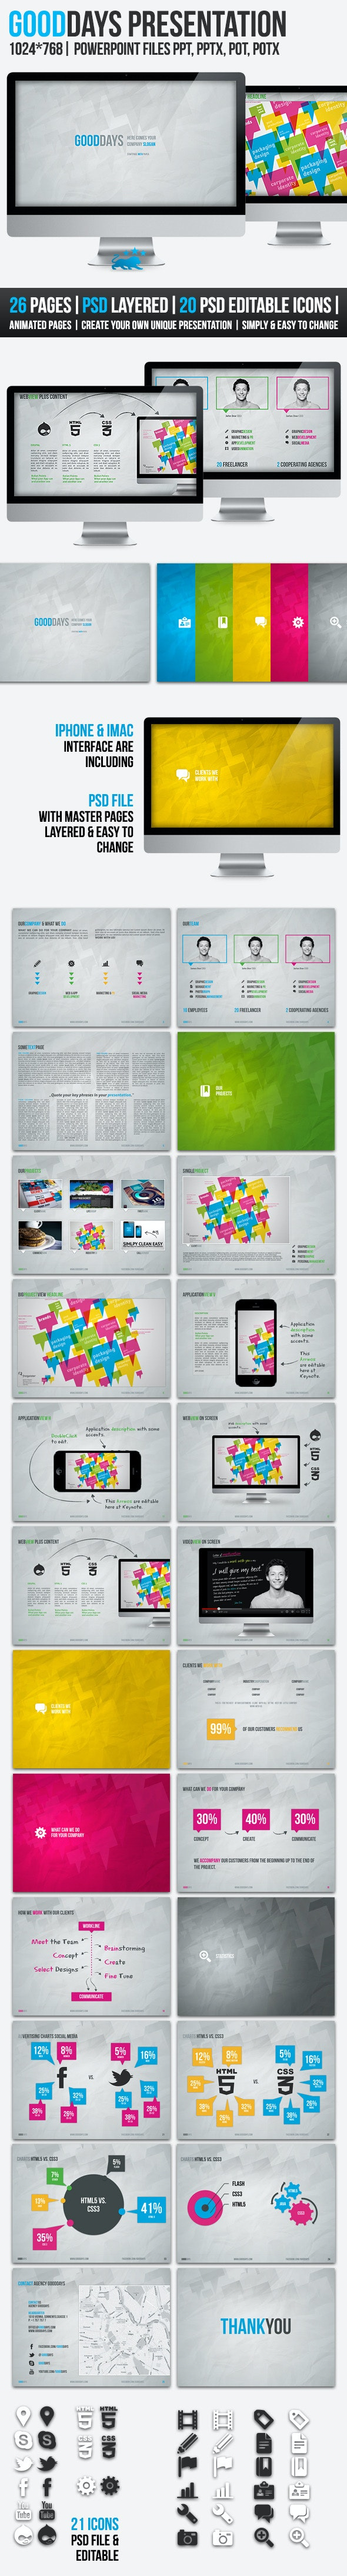 Good Days 26 Pages PowerPoint Presentation - PowerPoint Templates Presentation Templates